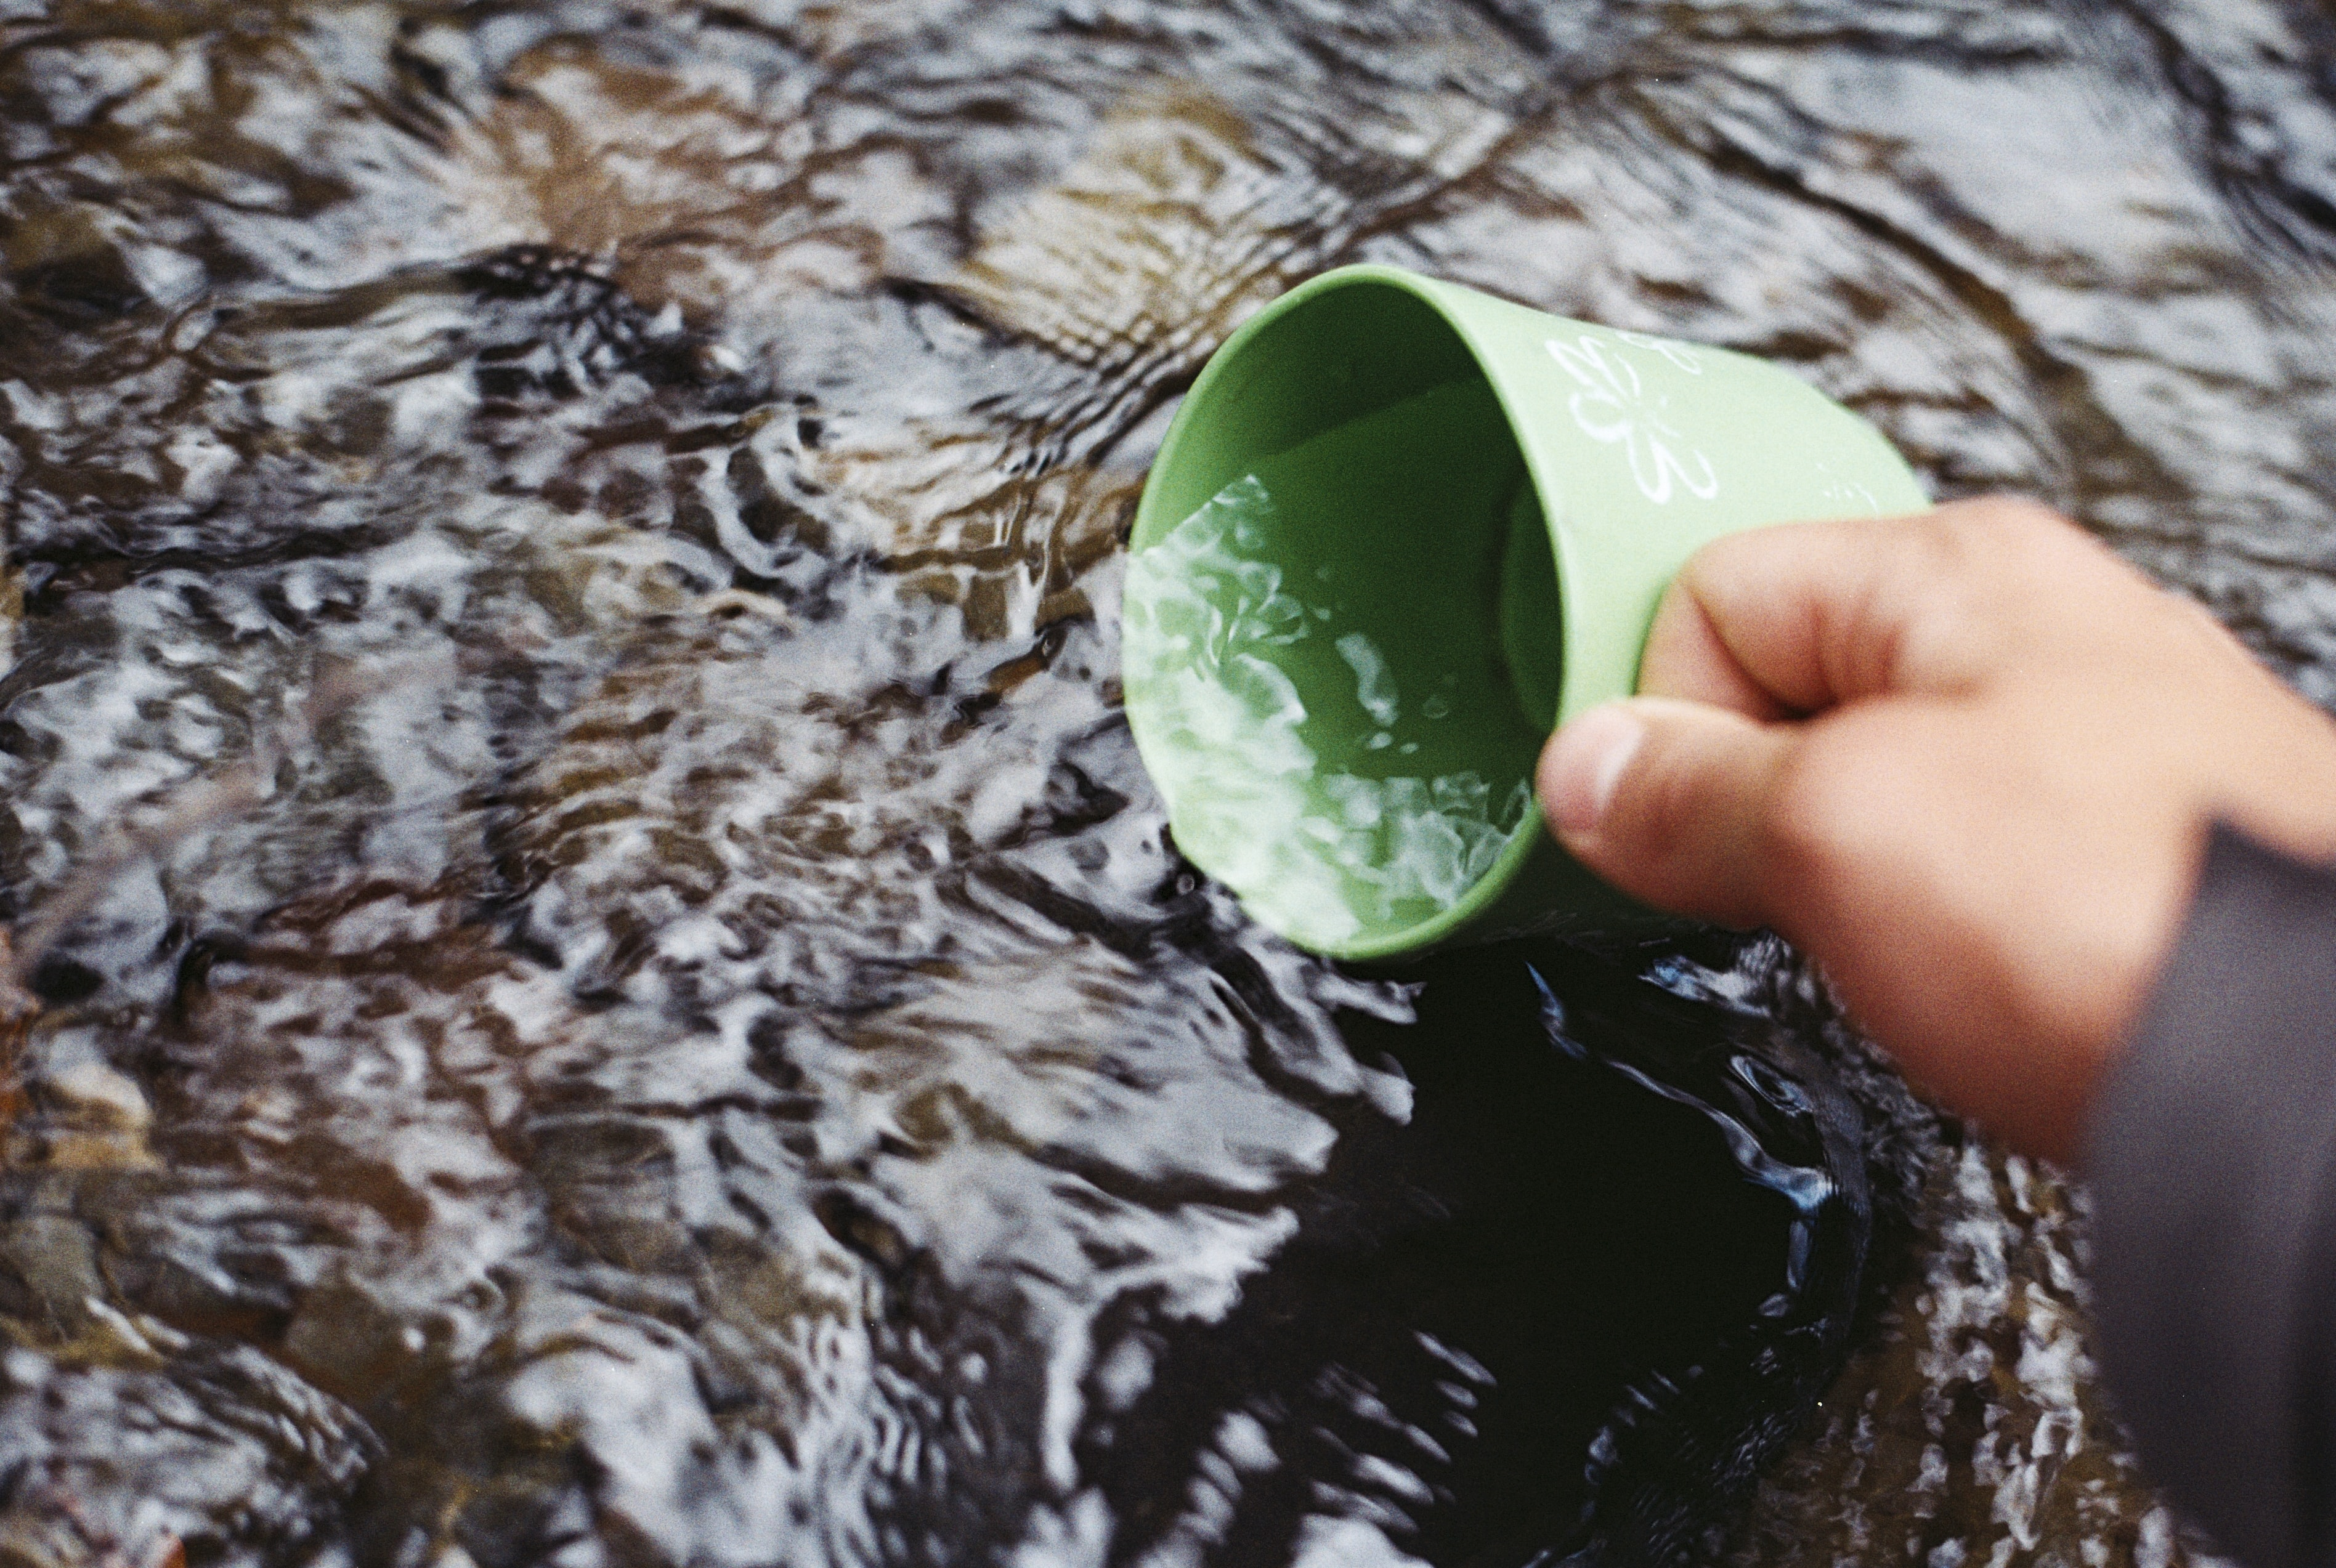 A person filling up a green mug in a river in Torres del Paine National Park